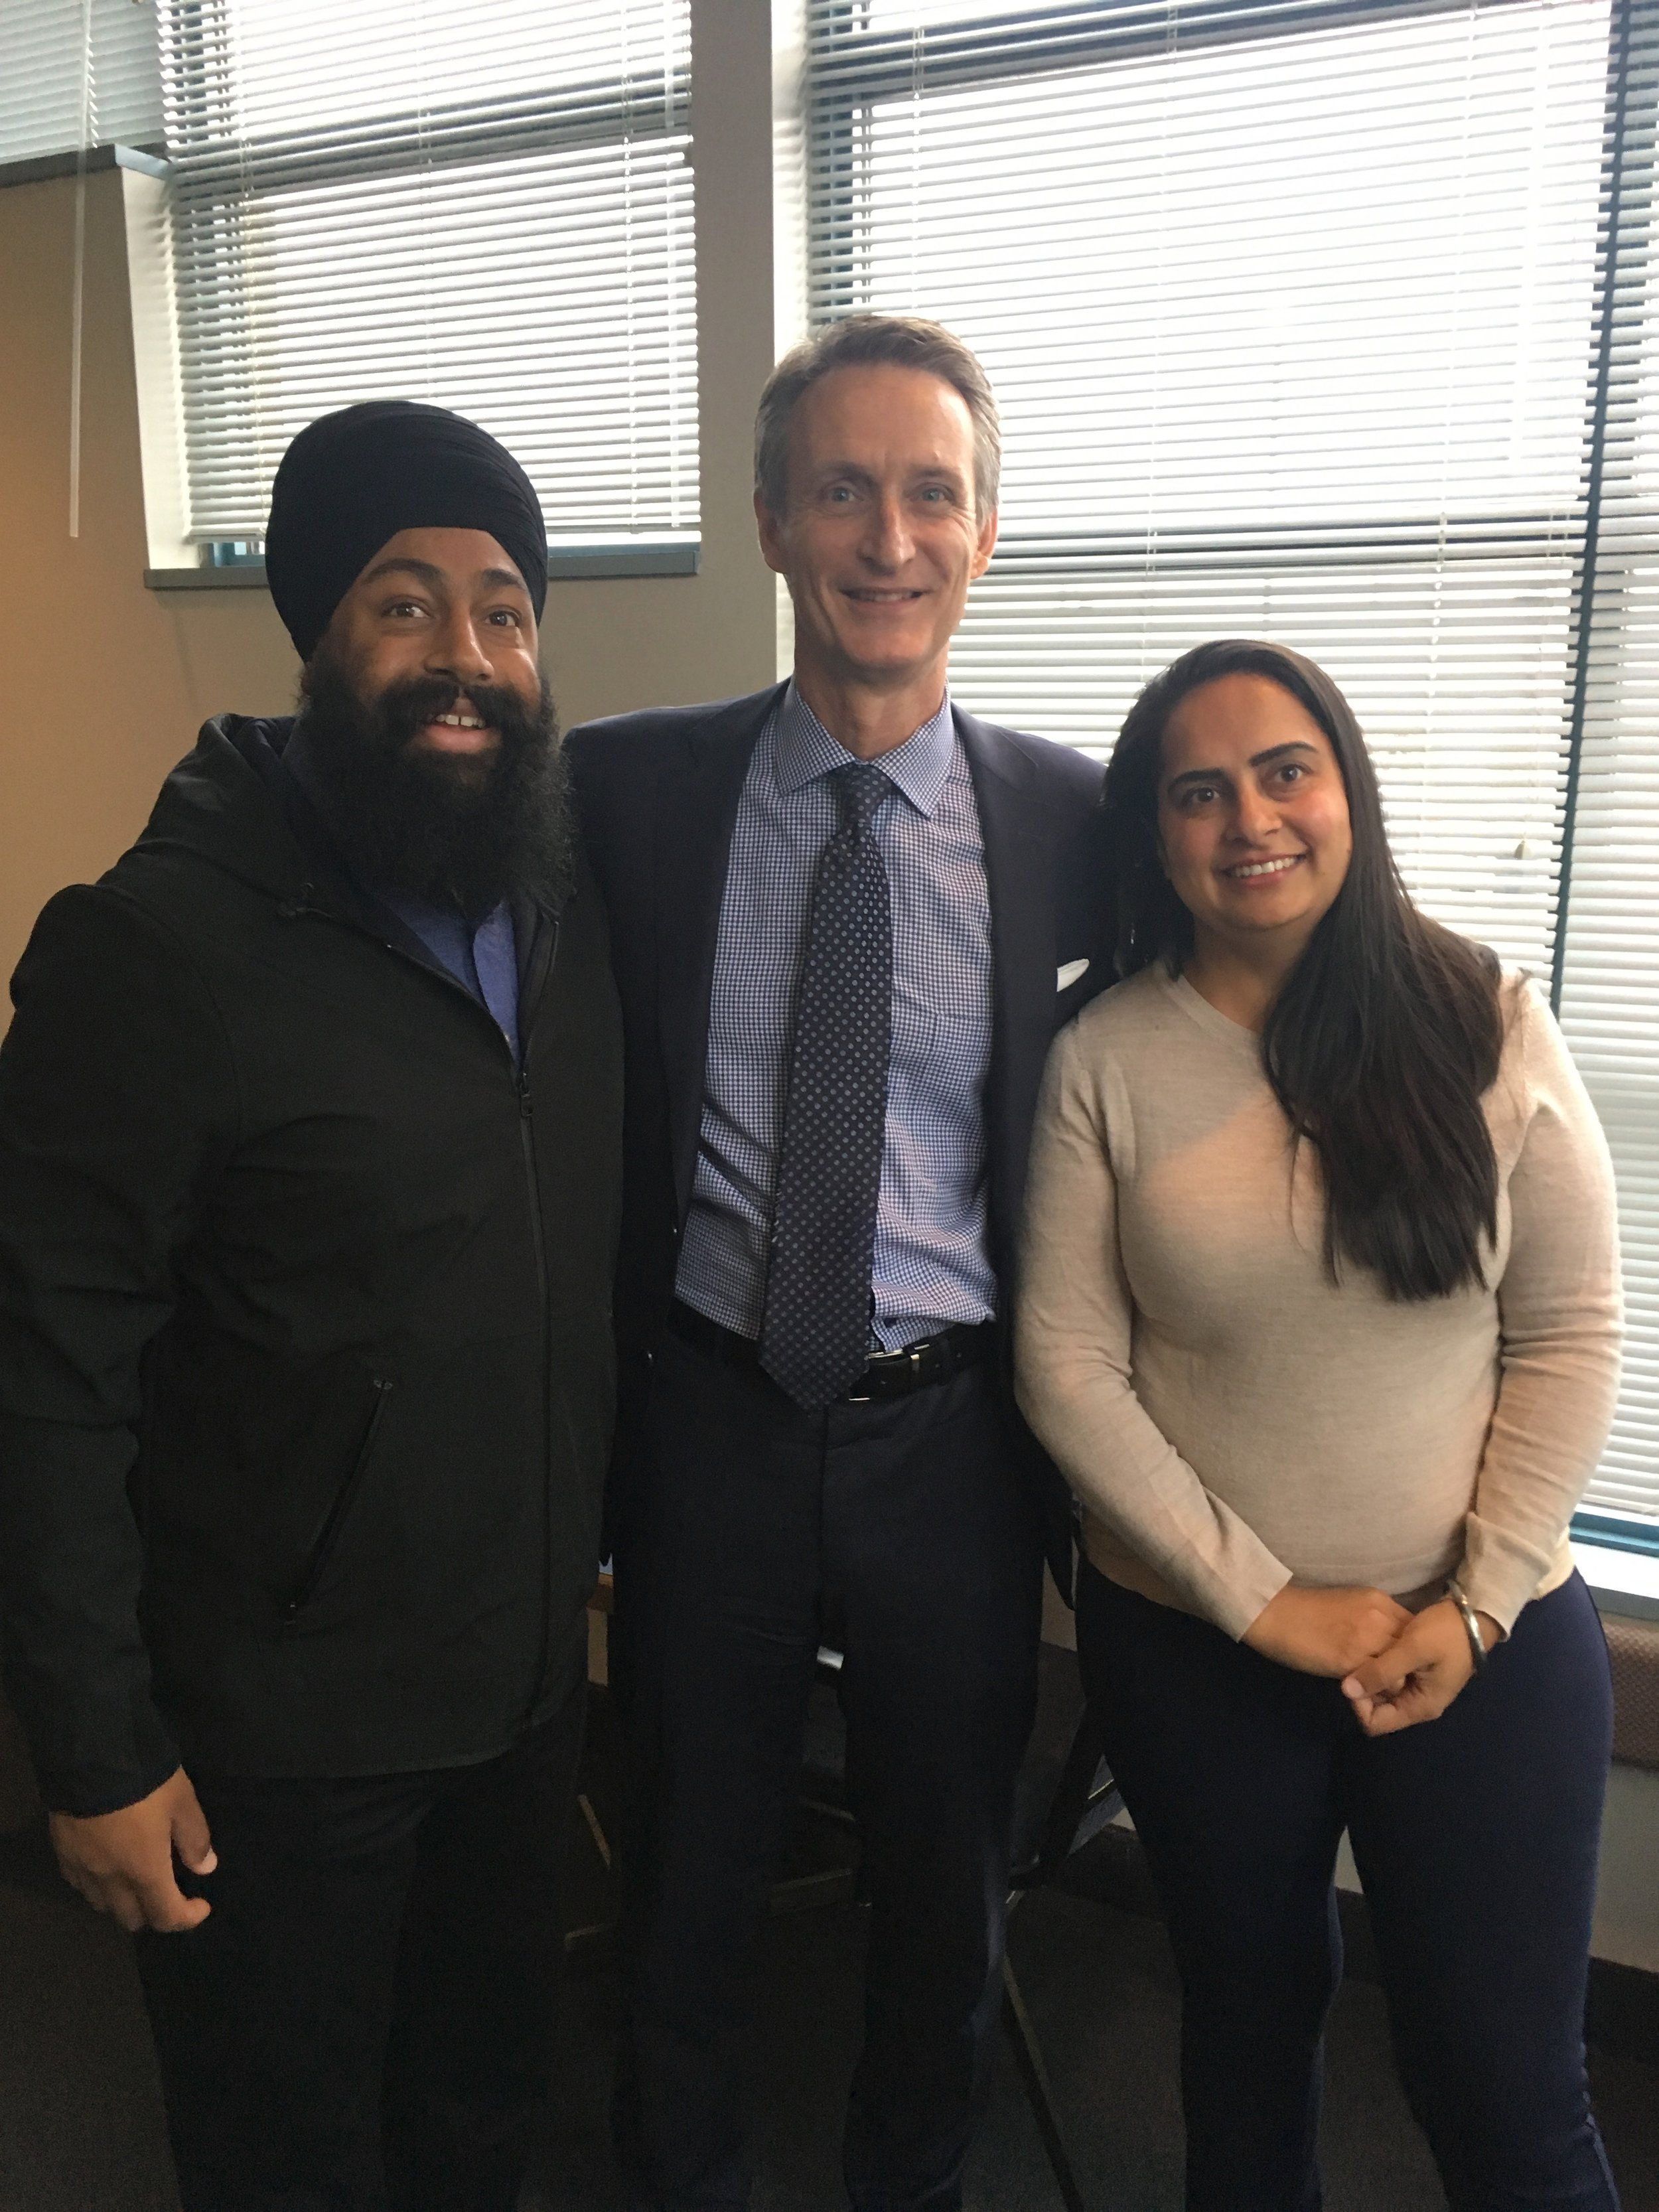 With the writ dropping today, it is timely to wish the best of luck to my fellow rookie candidates in Calgary, Jasraj Singh Hallan in Forest Lawn, and Jag Sahota in Skyview. Together, let's make some waves in Ottawa with our 2019 Rookie Team!